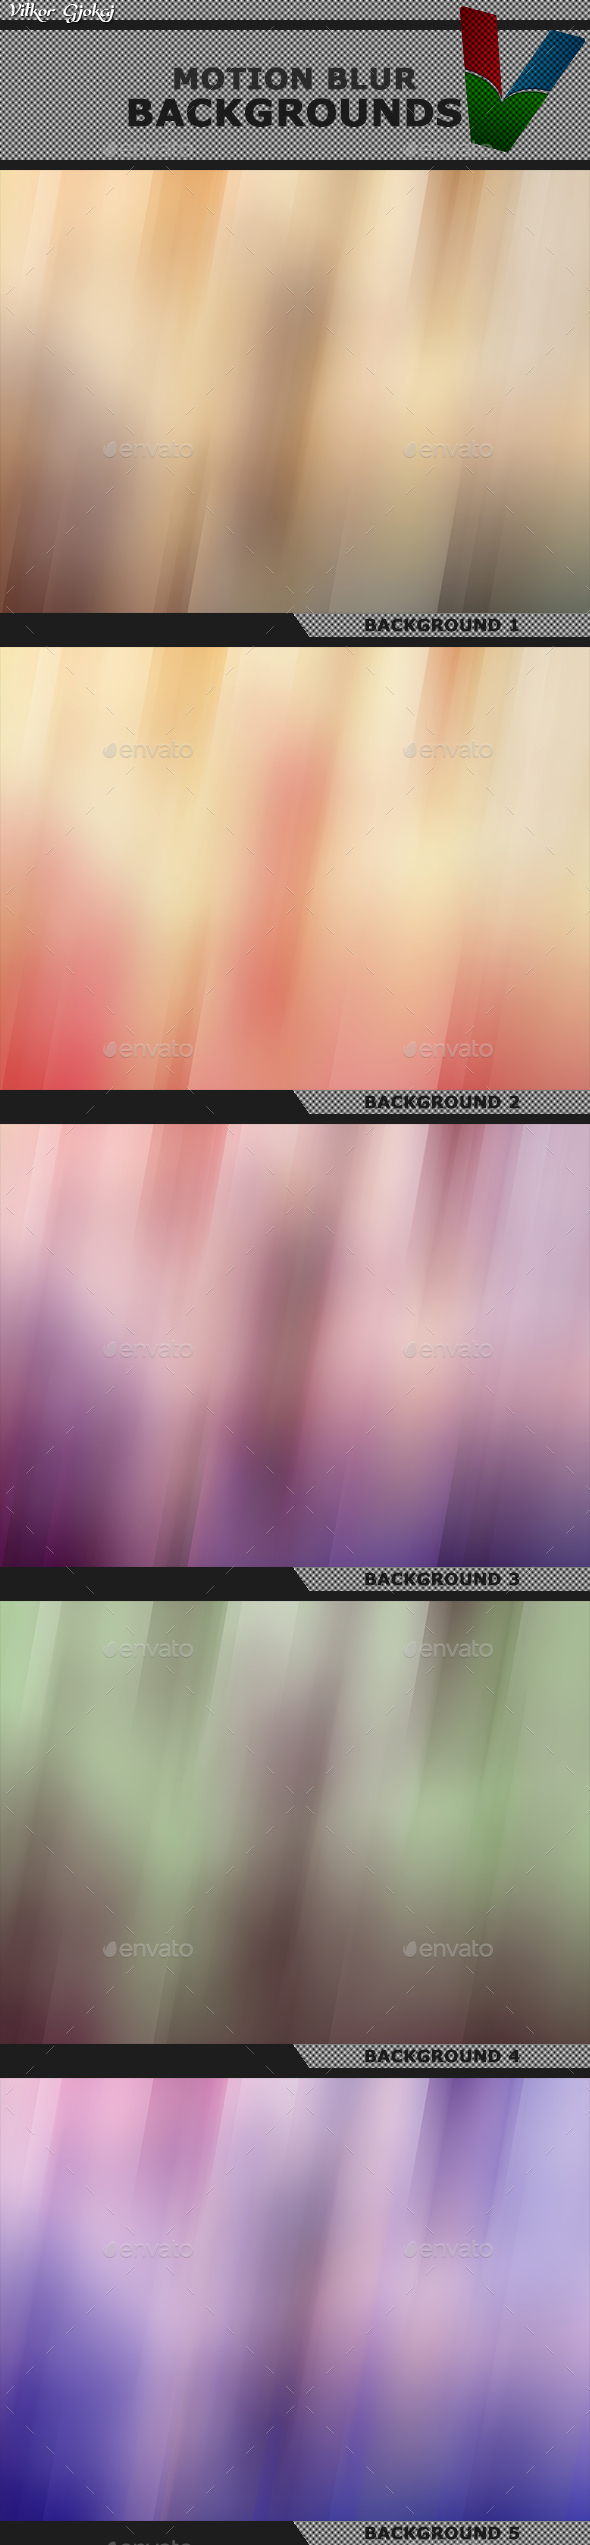 Motion Blur Backgrounds - Backgrounds Graphics